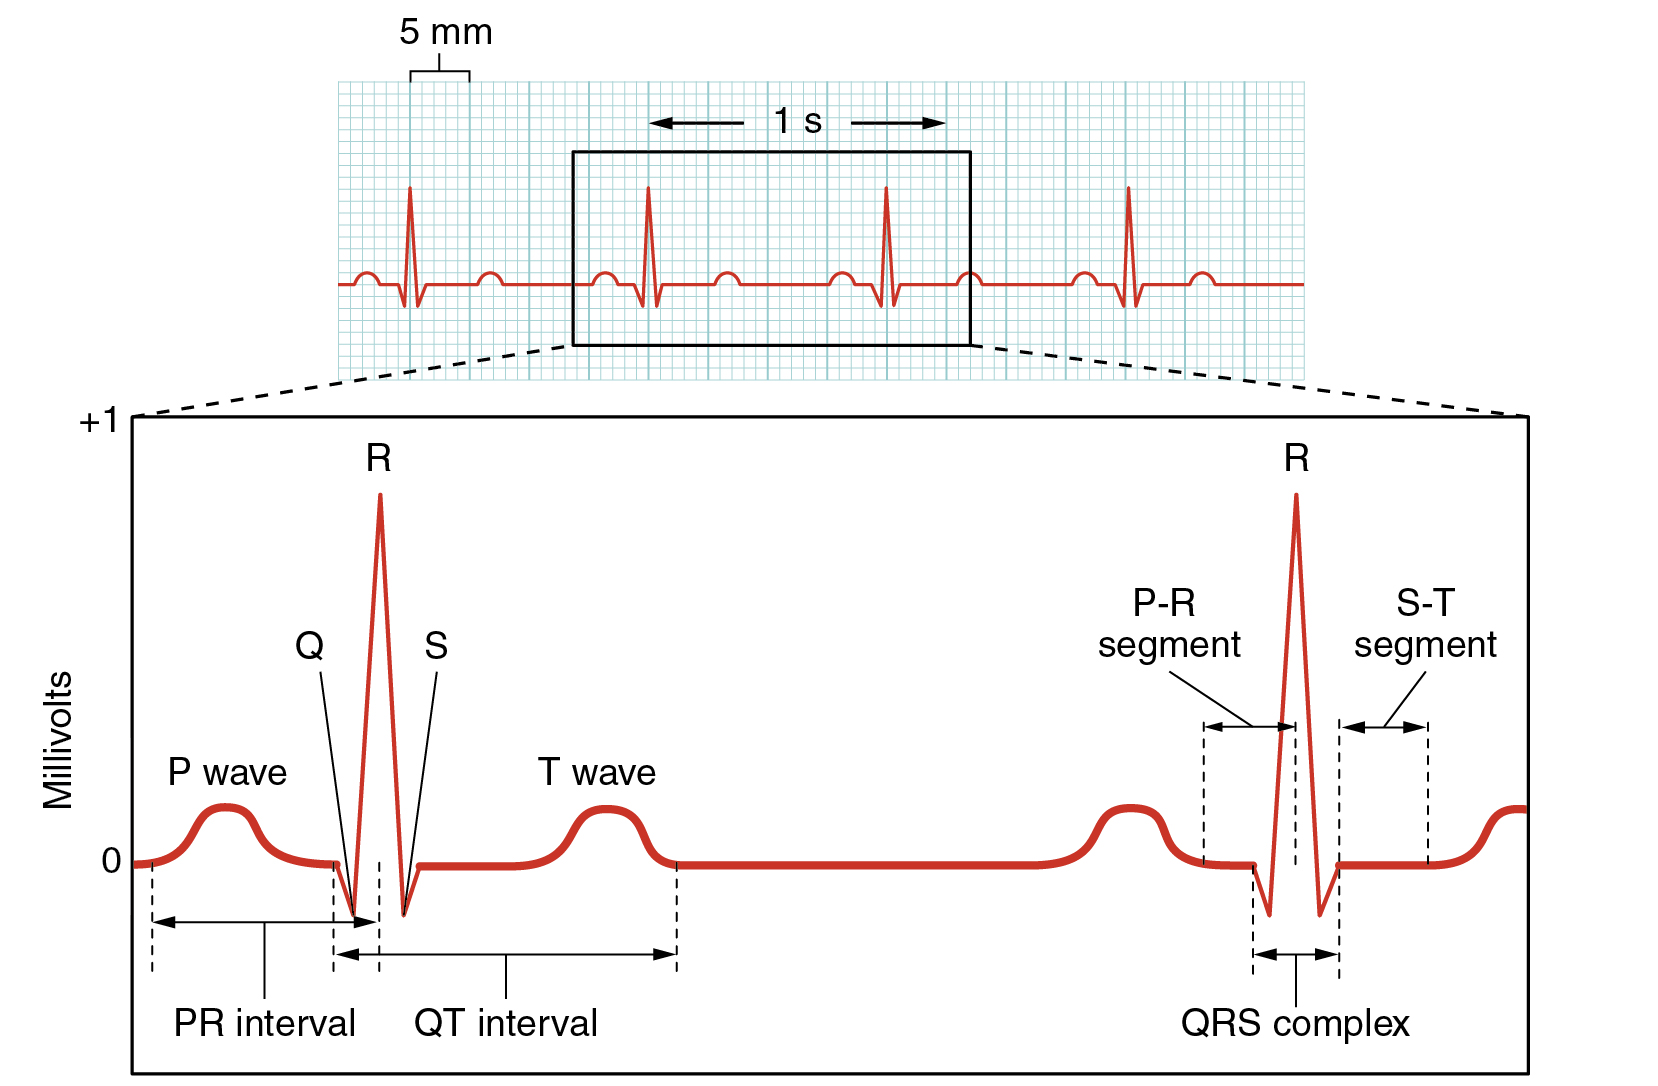 This figure shows a graph of millivolts over time and the heart cycles during an ECG.